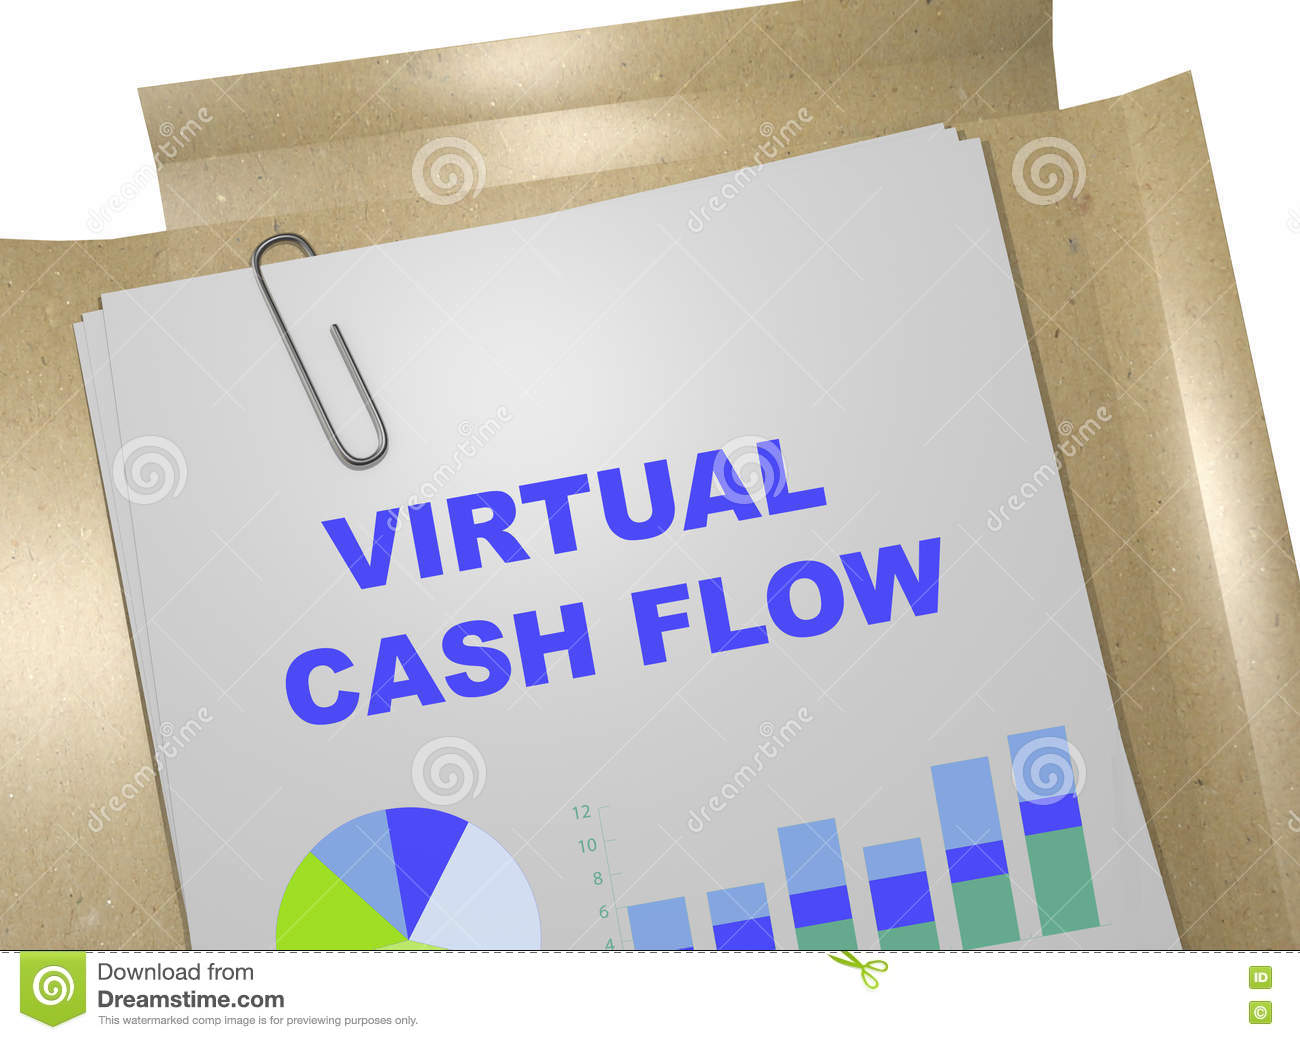 Virtueel Cash flowconcept